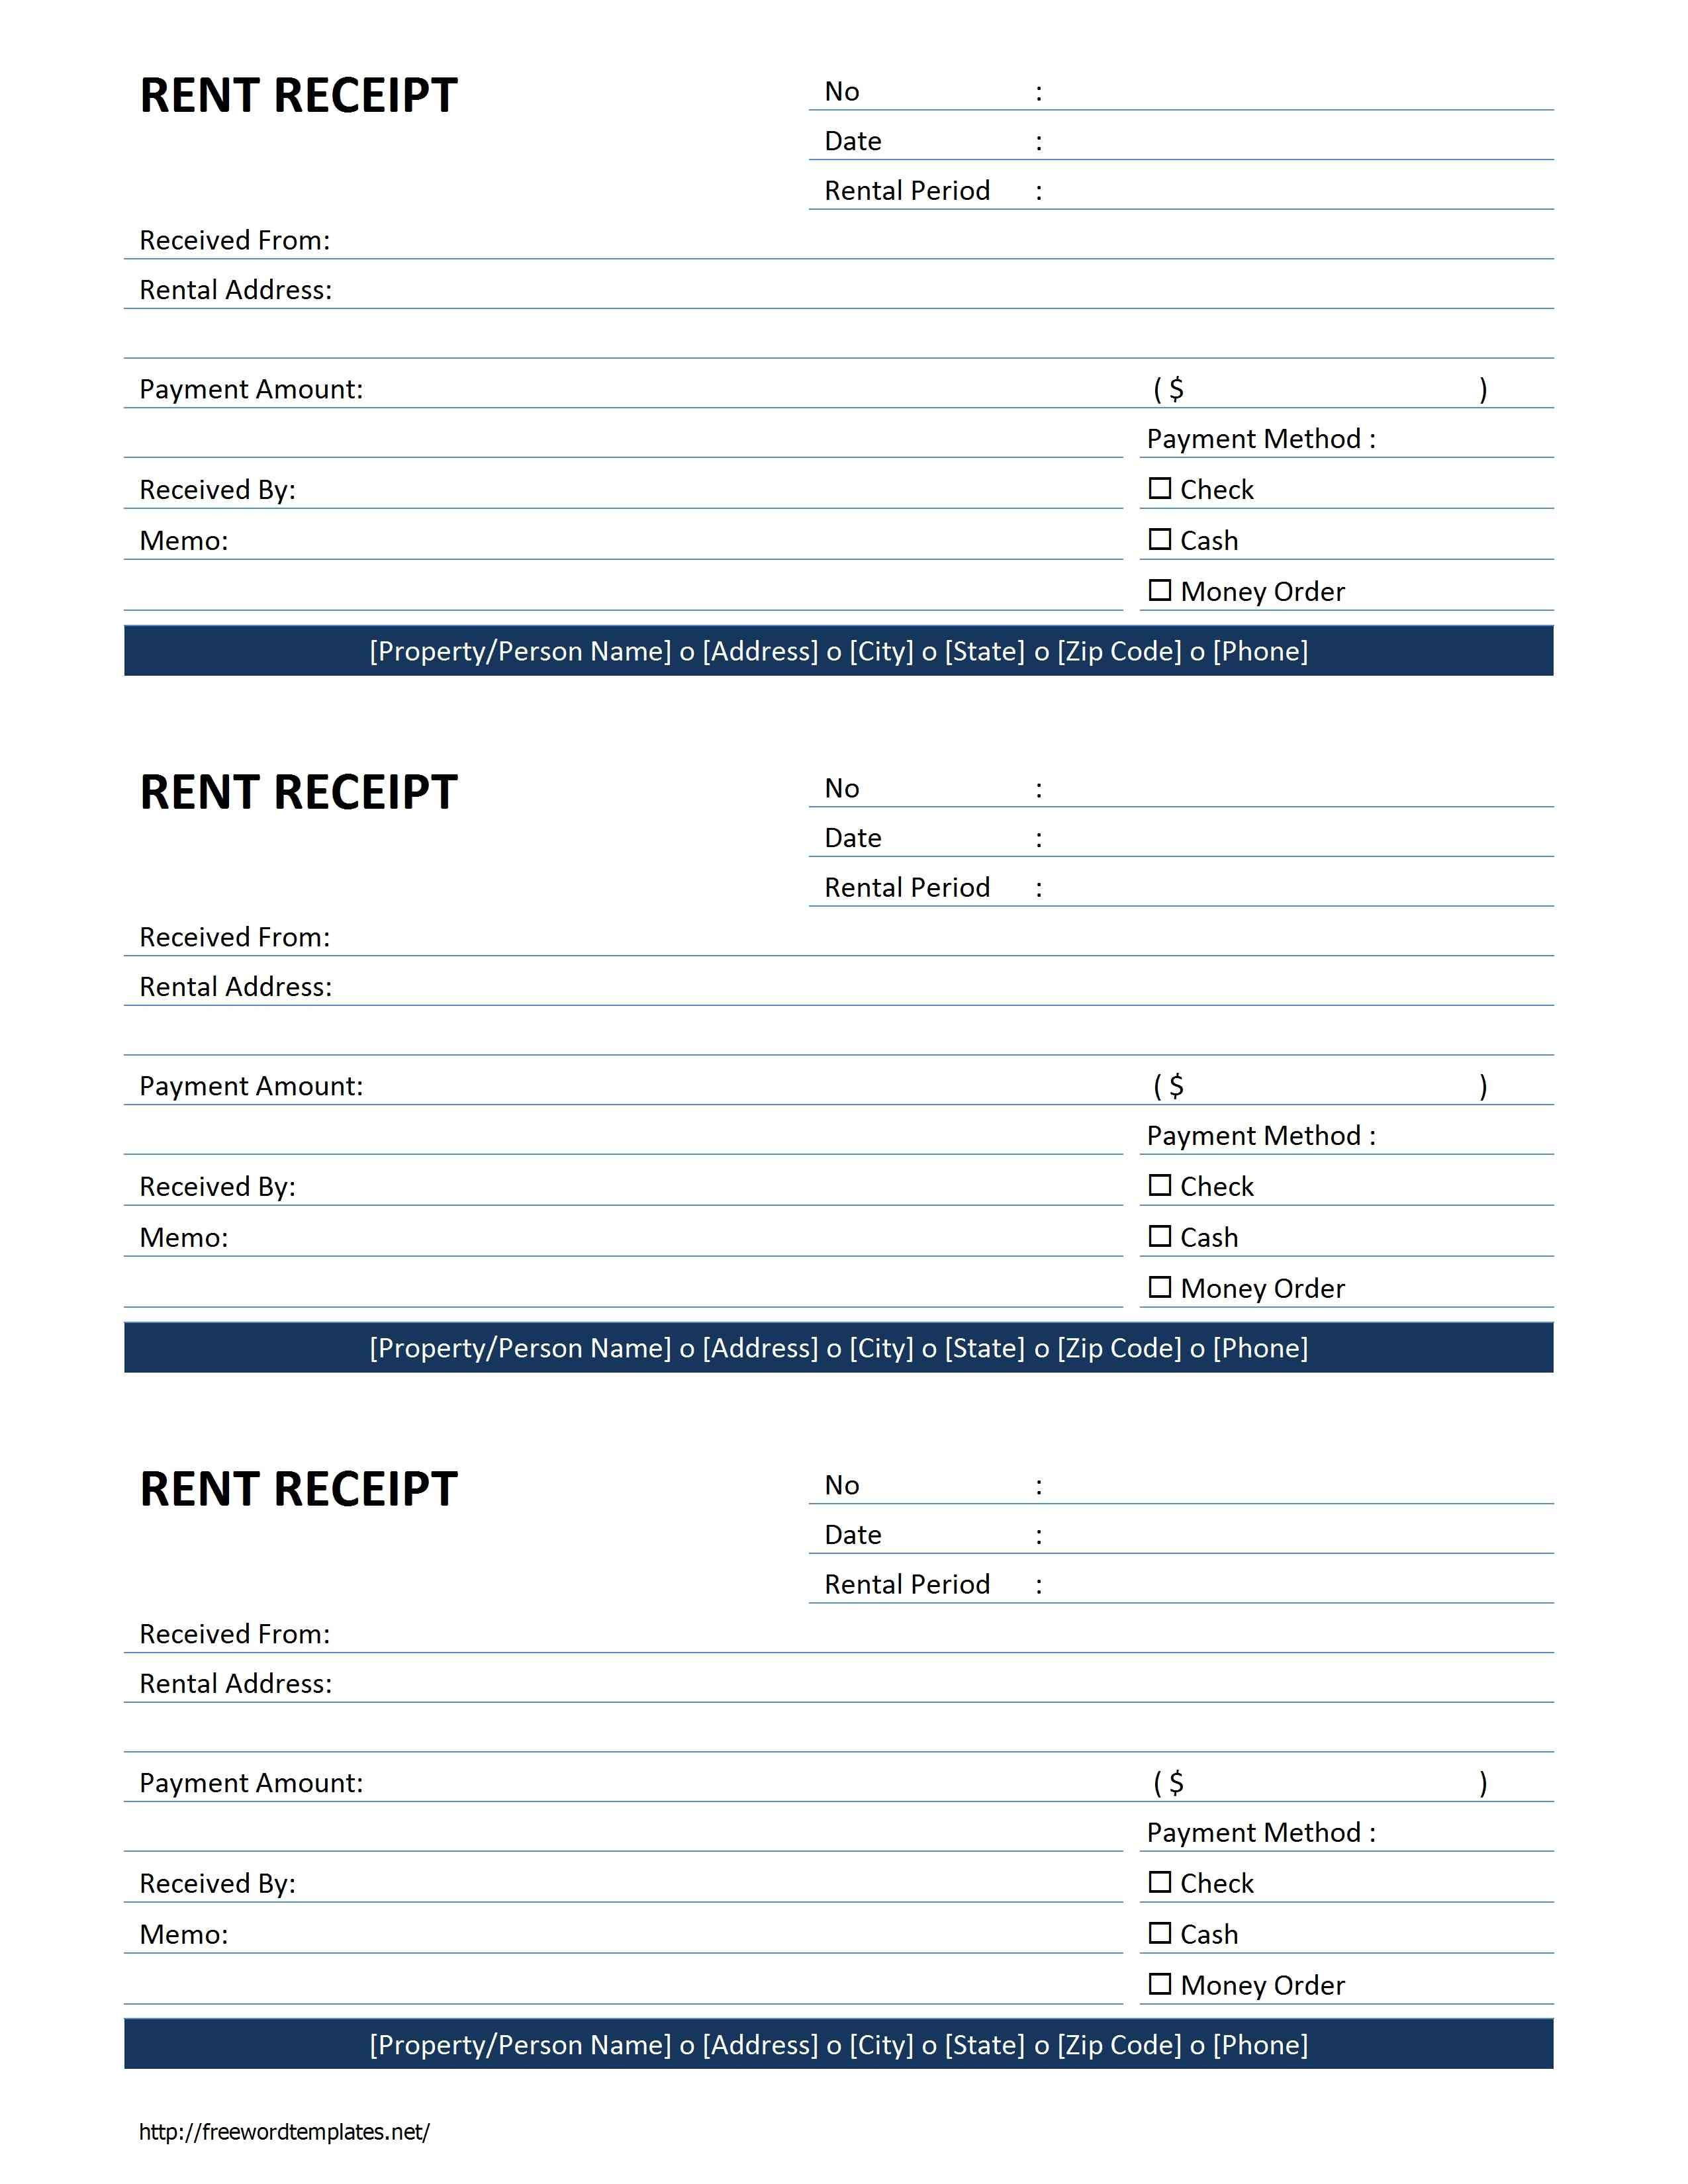 Rent Receipt Template | Free Microsoft Word Templates - Free Rent - Free Printable Rent Receipt